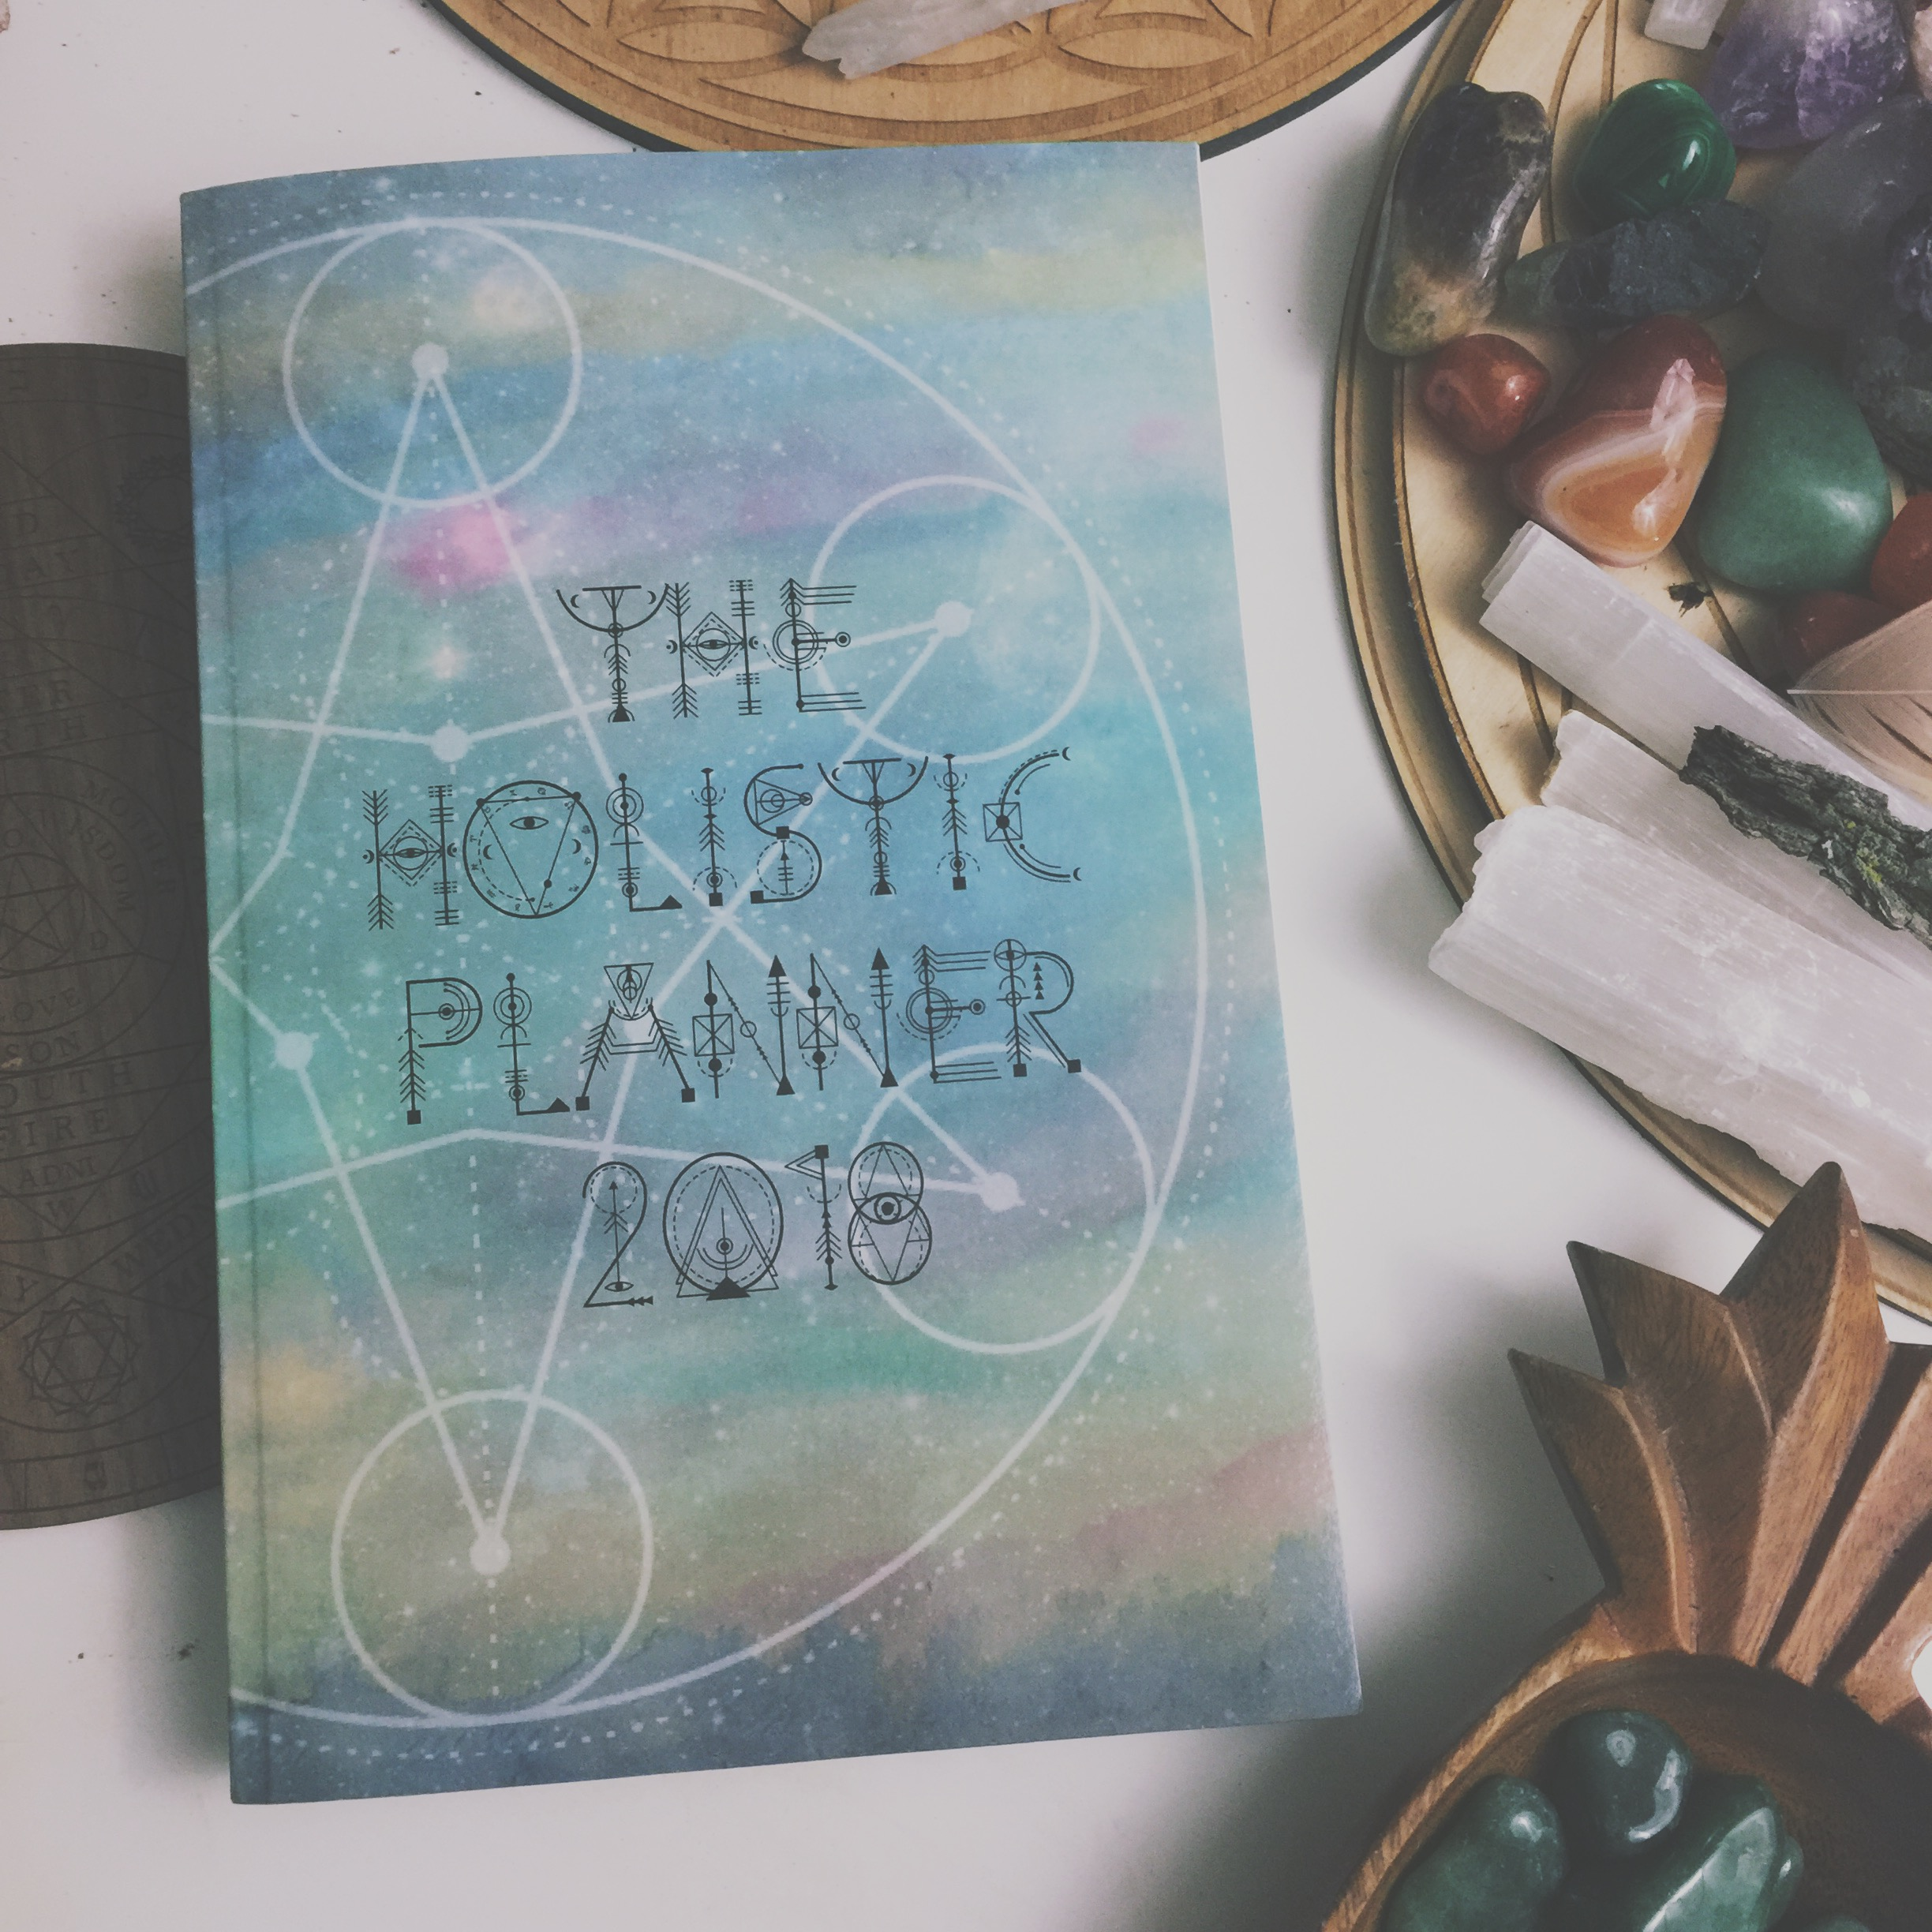 The 2018 Holistic Planner + Manifesting Intentions Workbook